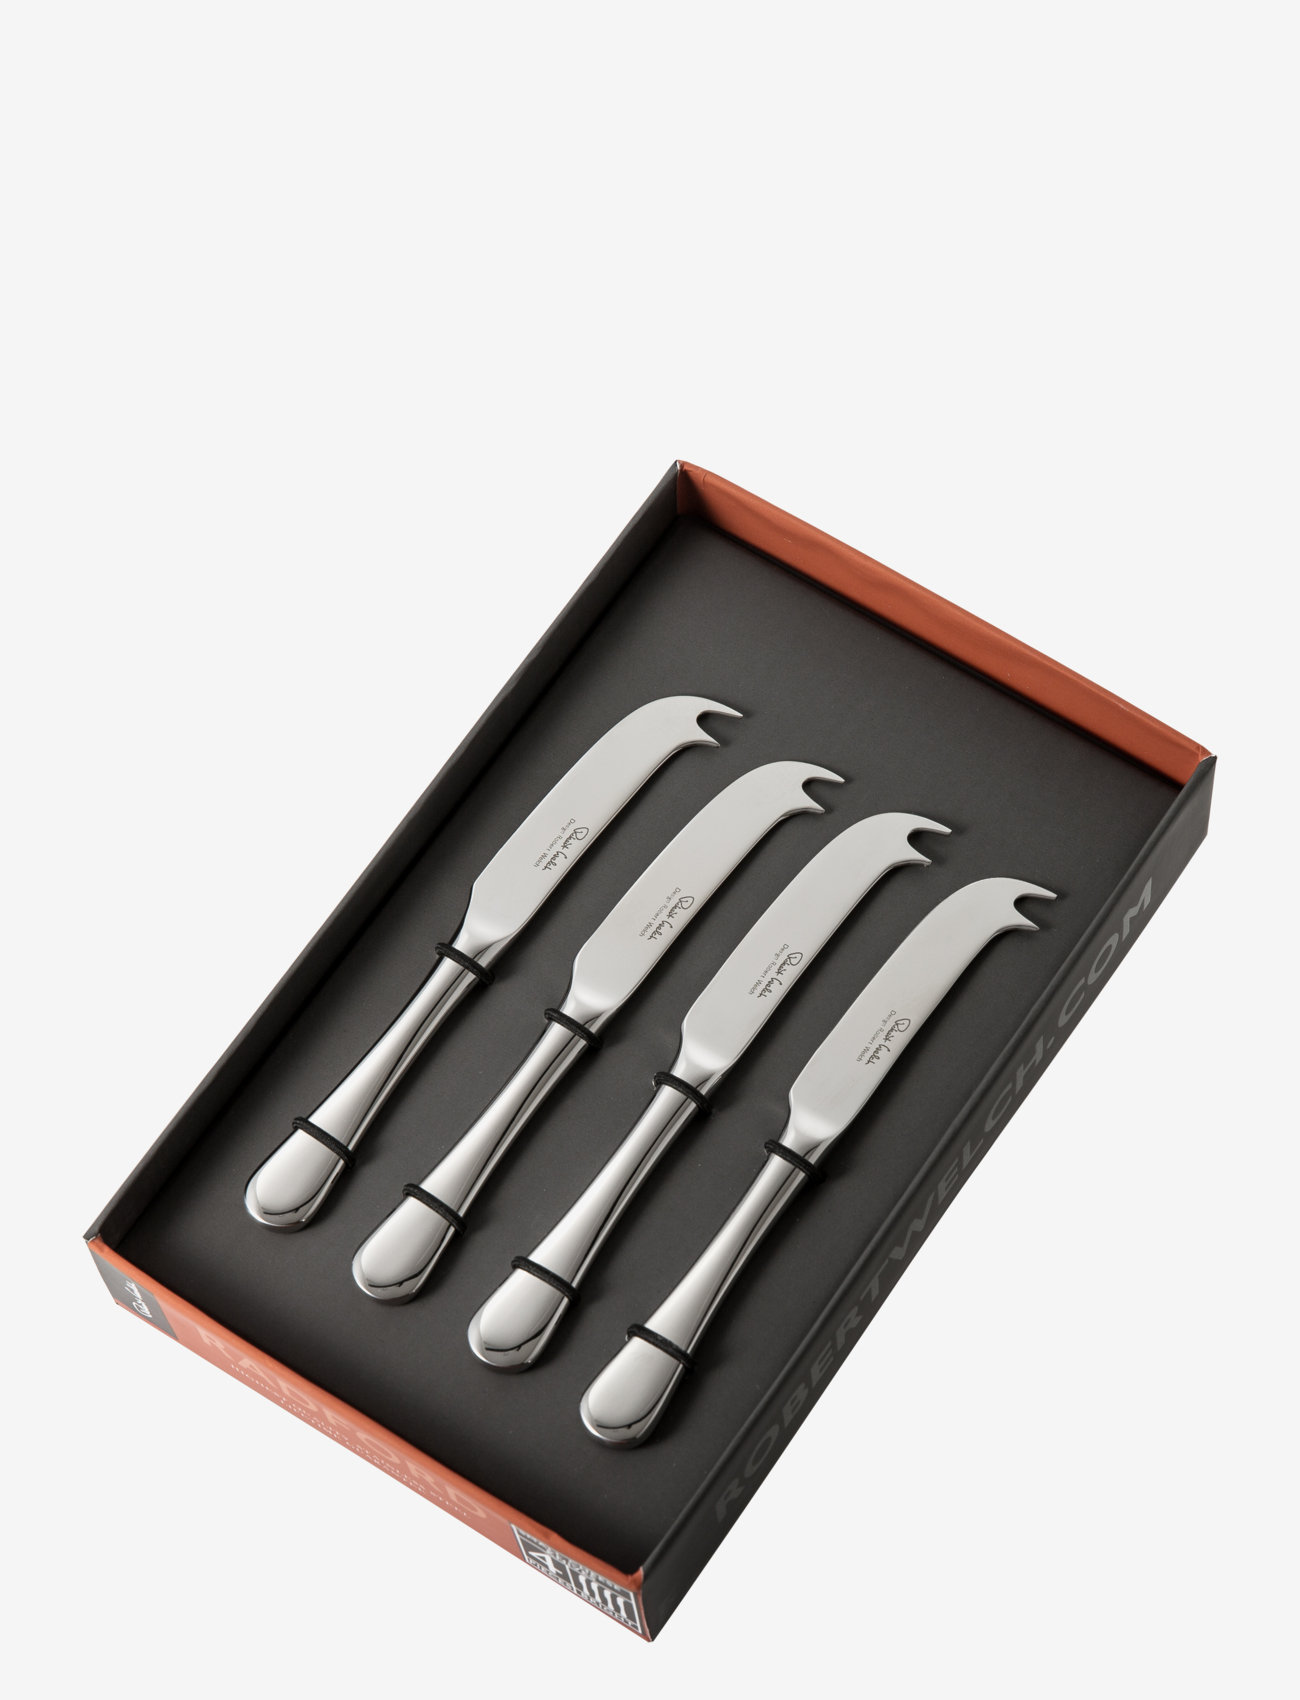 Robert Welch - Radford Bright Small Cheese Knife, Set of 4 - ostekniver - multi colour - 1